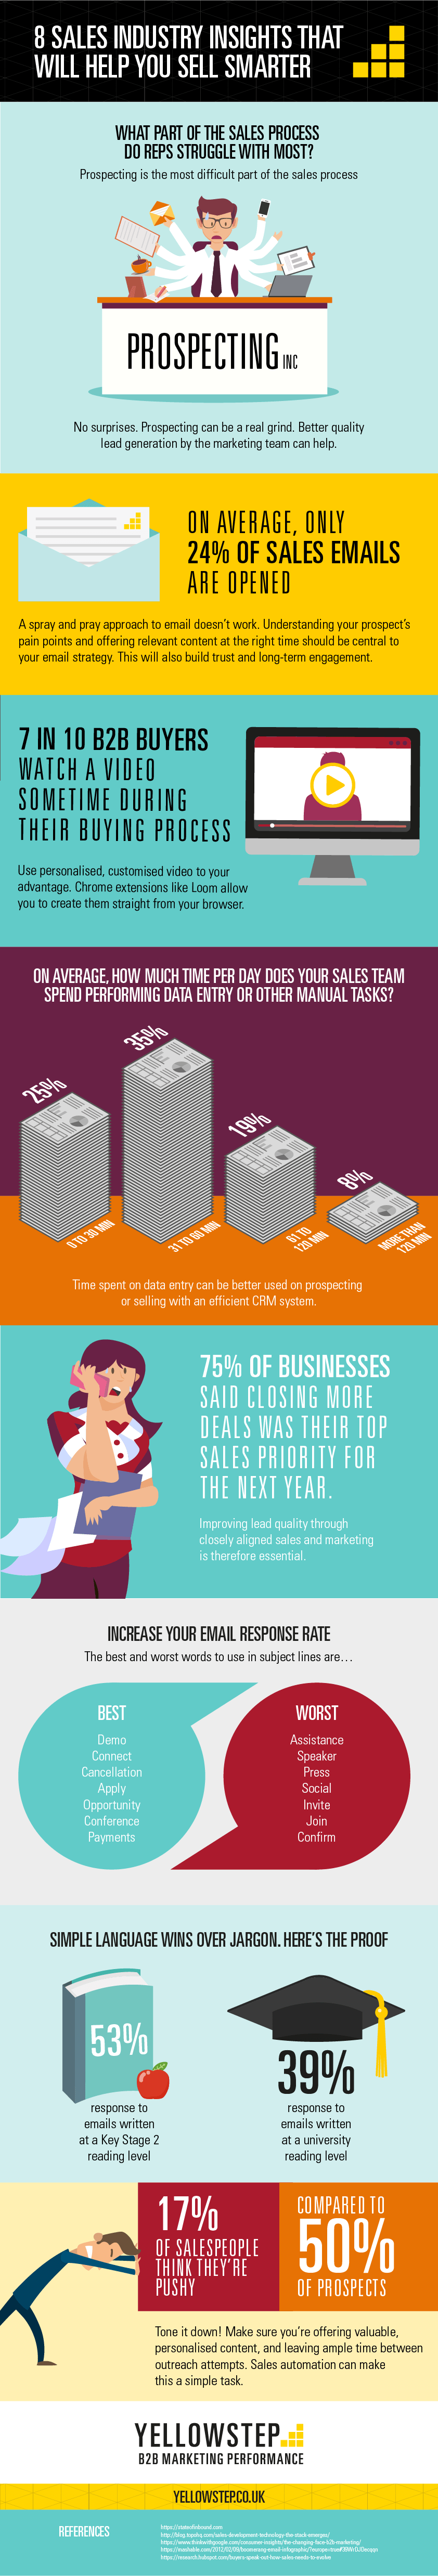 Sales Industry Insights